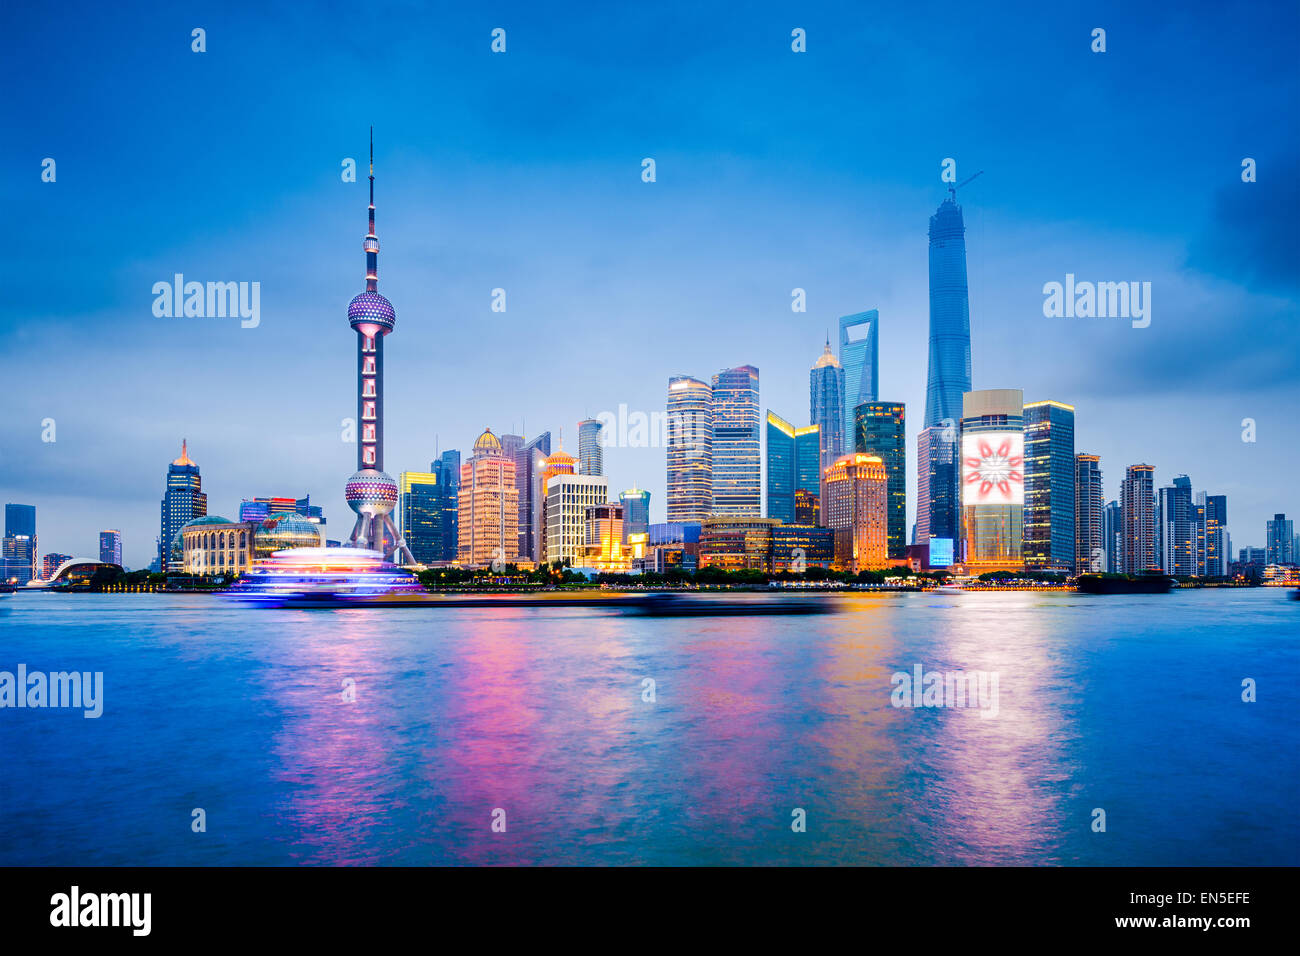 Shanghai, China financial district skyline en el río Huangpu. Imagen De Stock